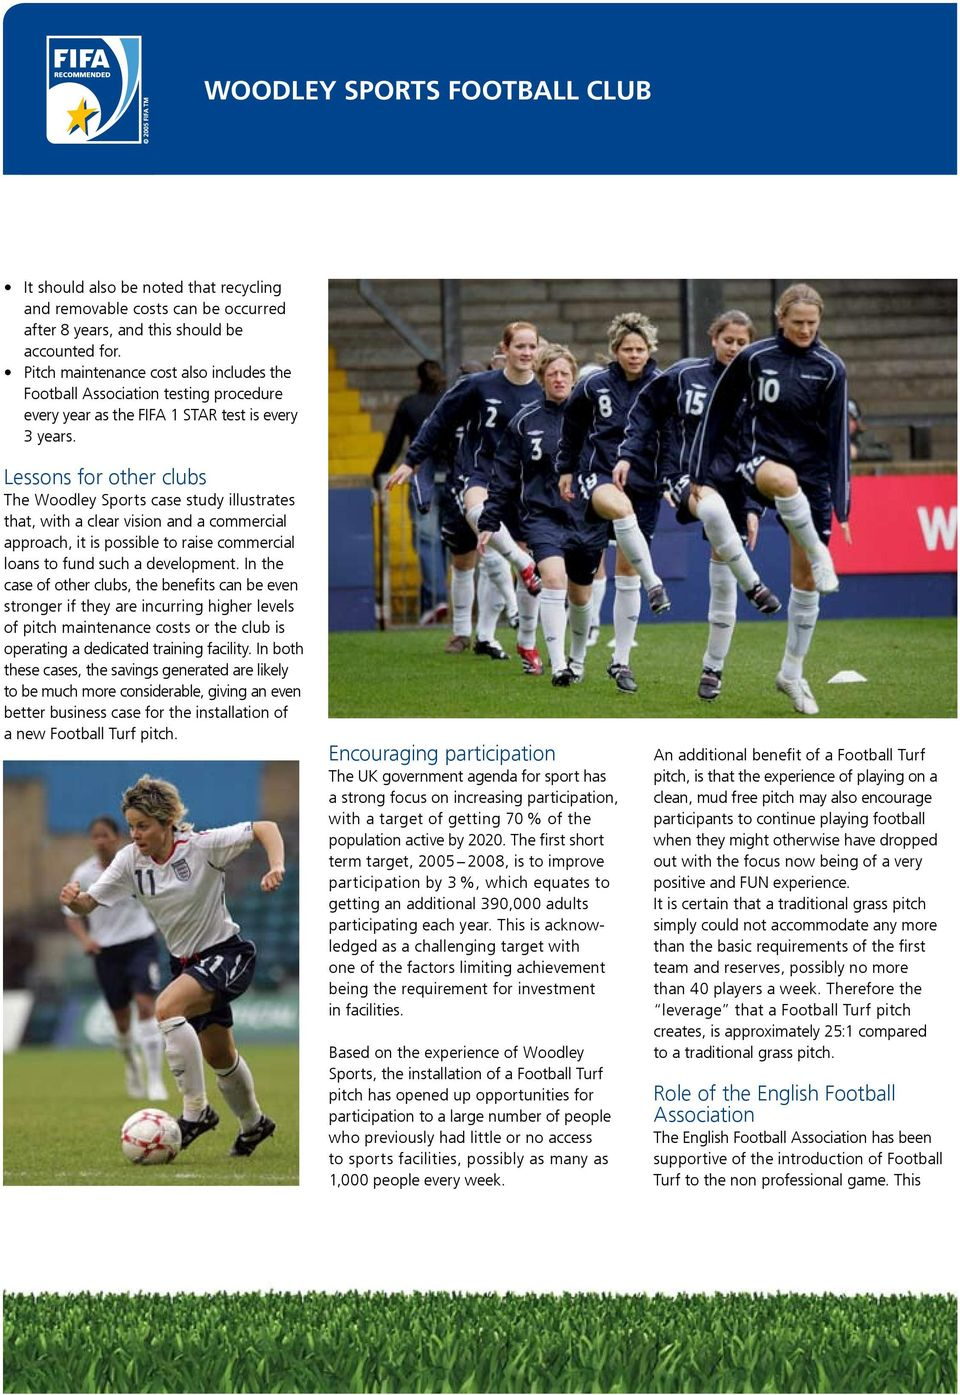 Lessons for other clubs The Woodley Sports case study illustrates that, with a clear vision and a commercial approach, it is possible to raise commercial loans to fund such a development.